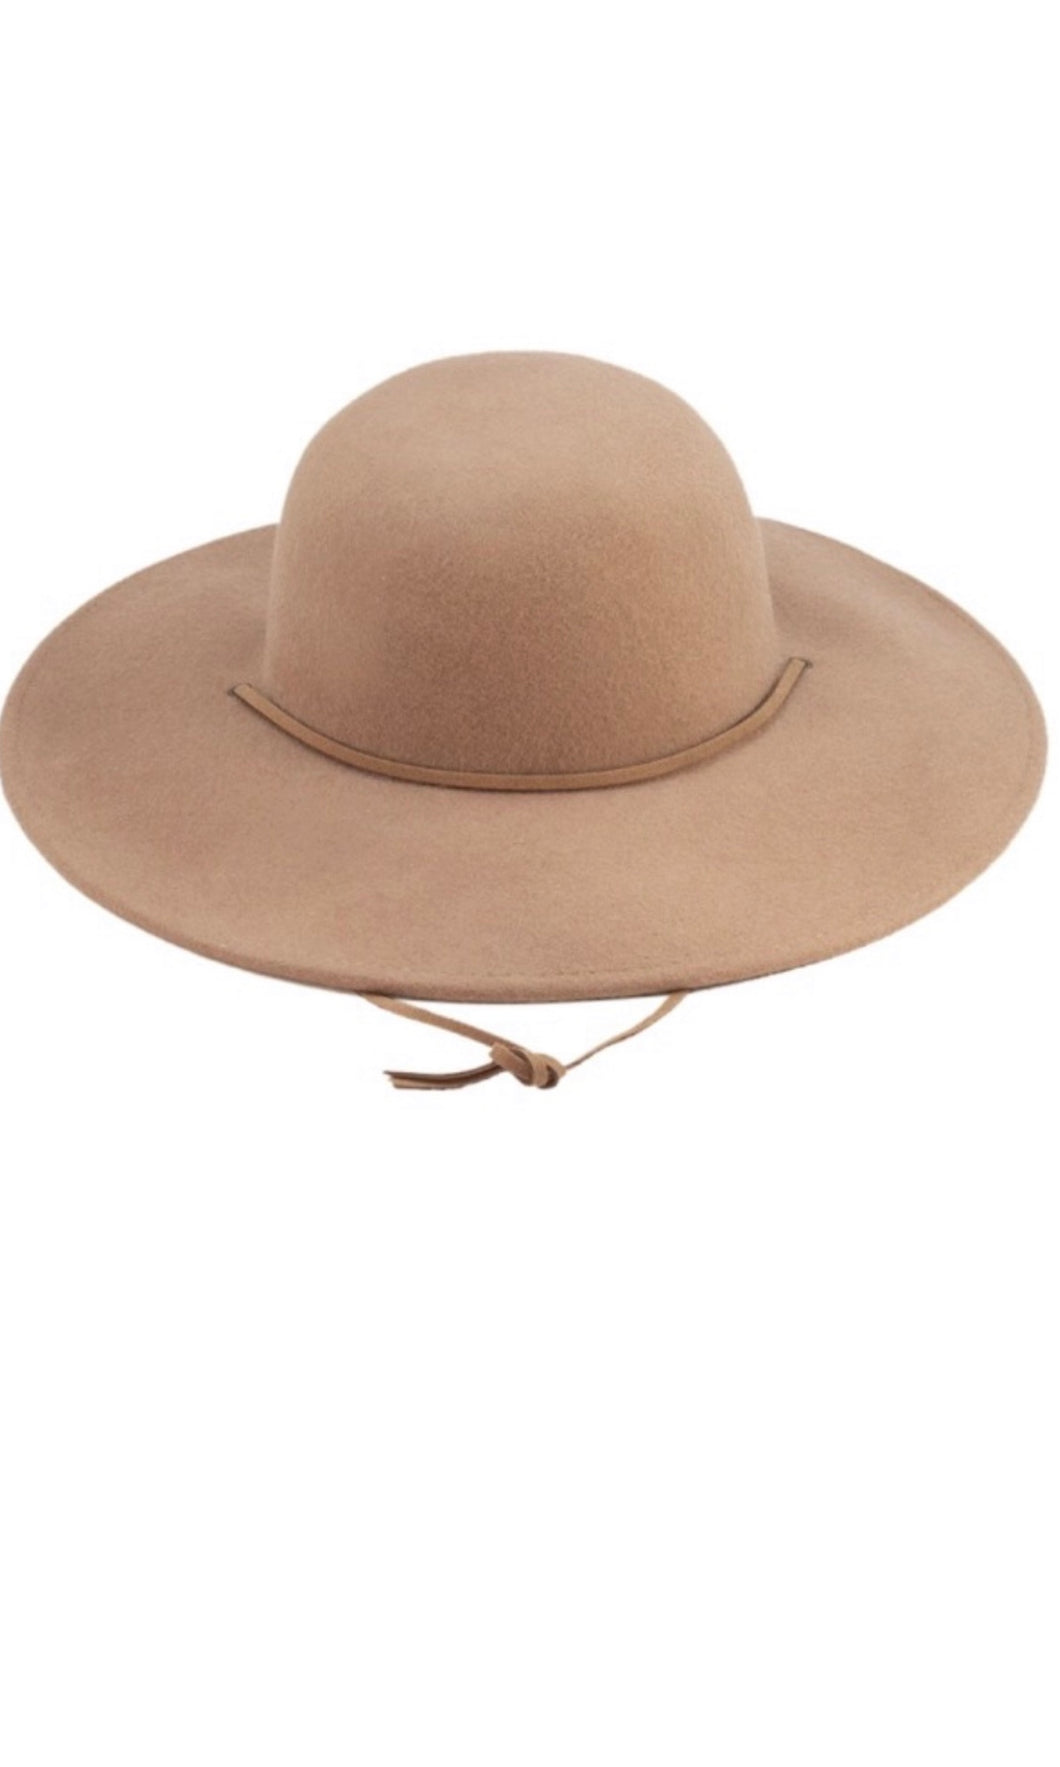 Collins Camel Boho Floppy Wide Brim Hat